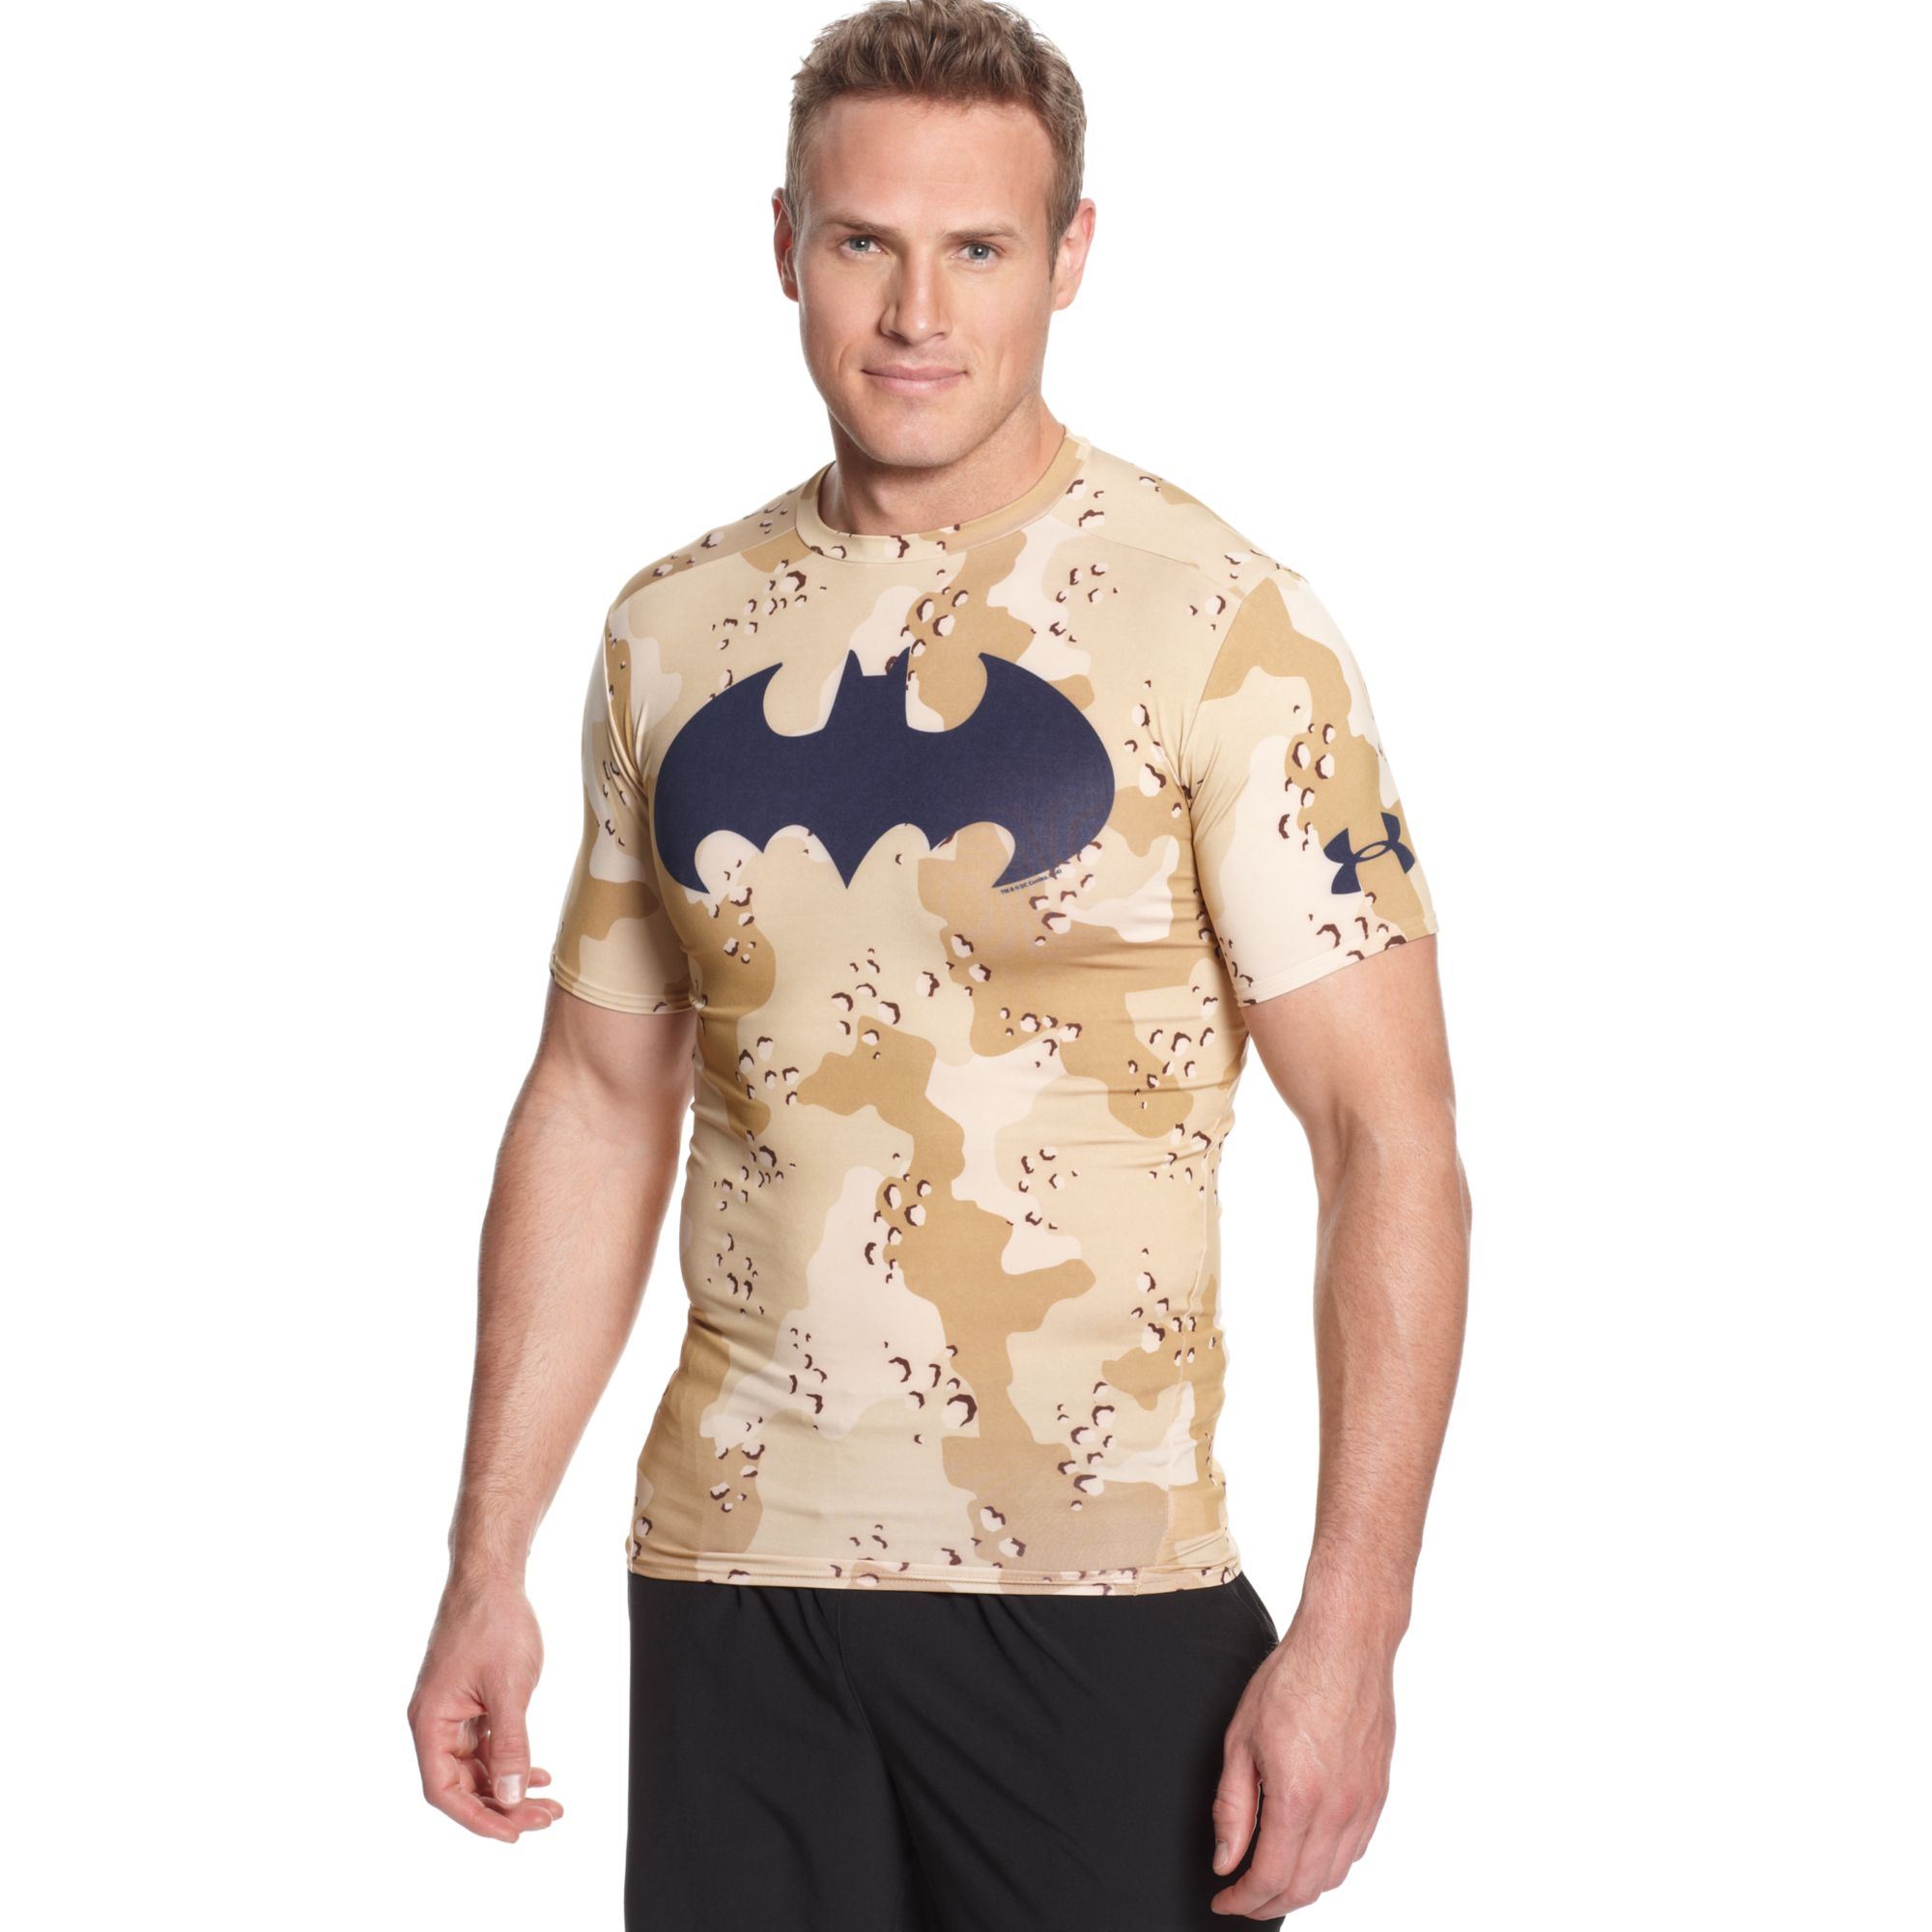 24b0e8be Under Armour Alter Ego Batman Camouflage Compression Tshirt in Brown ...